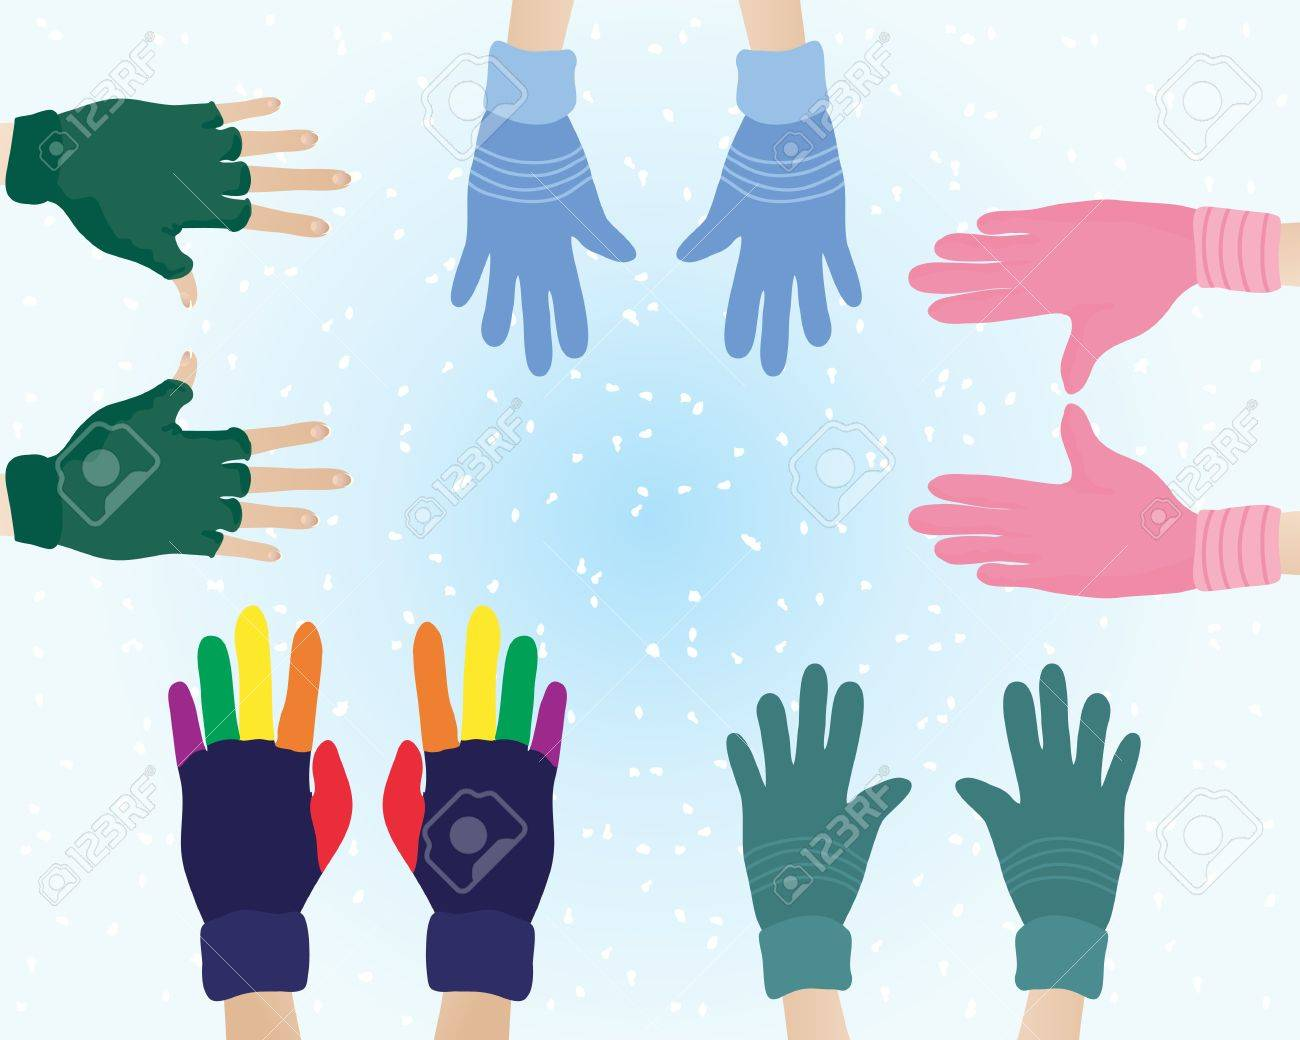 Fingerless gloves for guitarists - Fingerless Gloves An Illustration Of Pairs Of Hands With Different Colors And Patterns Of Woolly